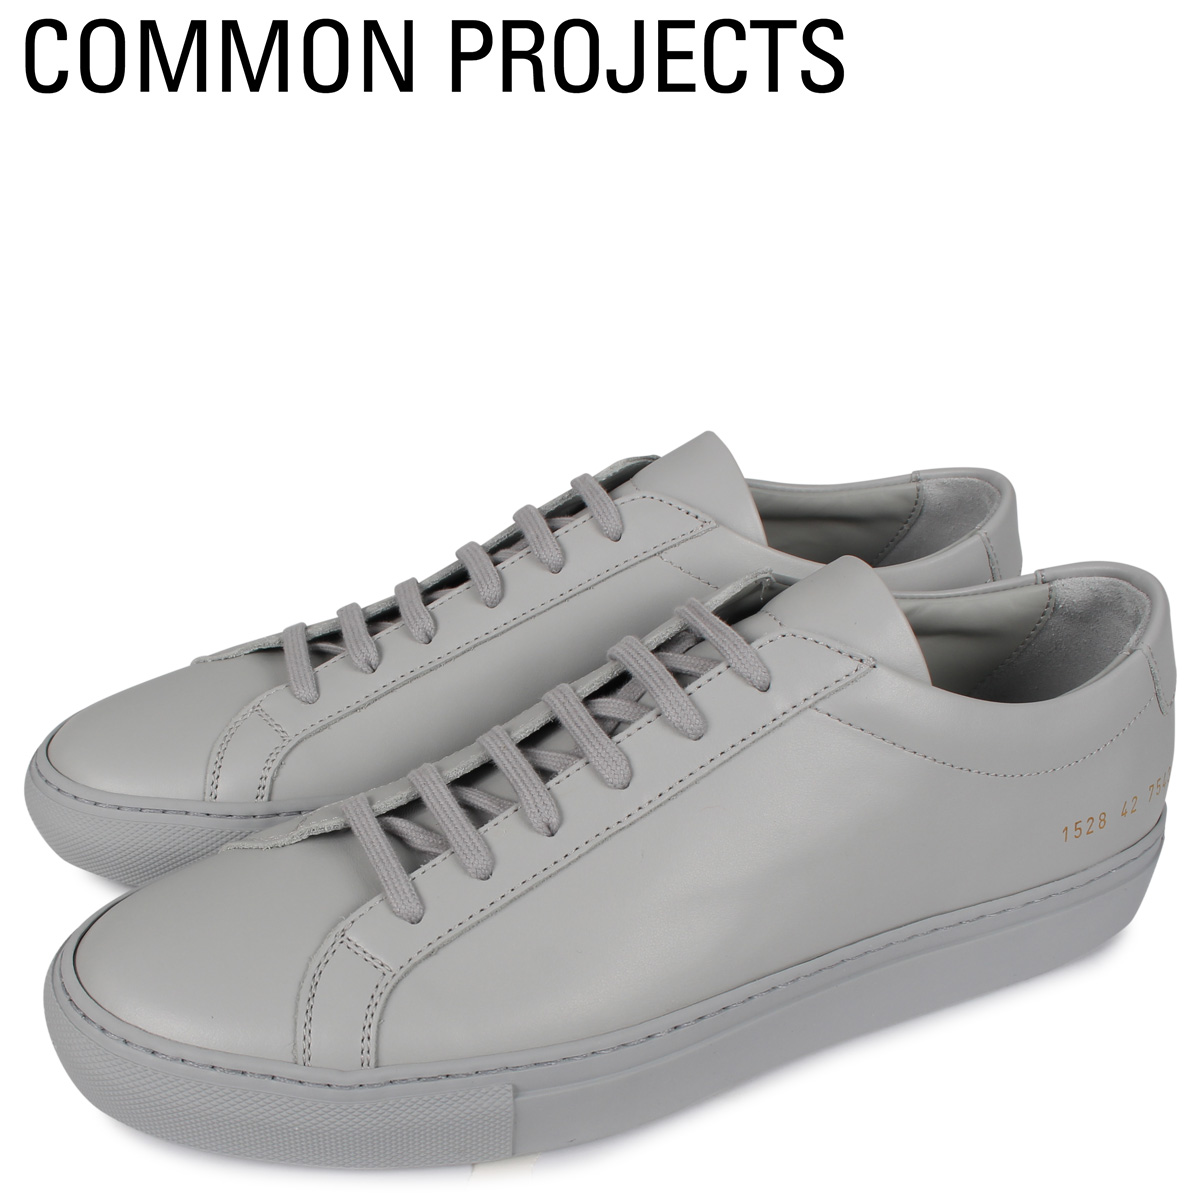 Common Projects コモンプロジェクト アキレス ロー スニーカー メンズ ACHILLES LOW グレー 1528-7543 [4/2新入荷]